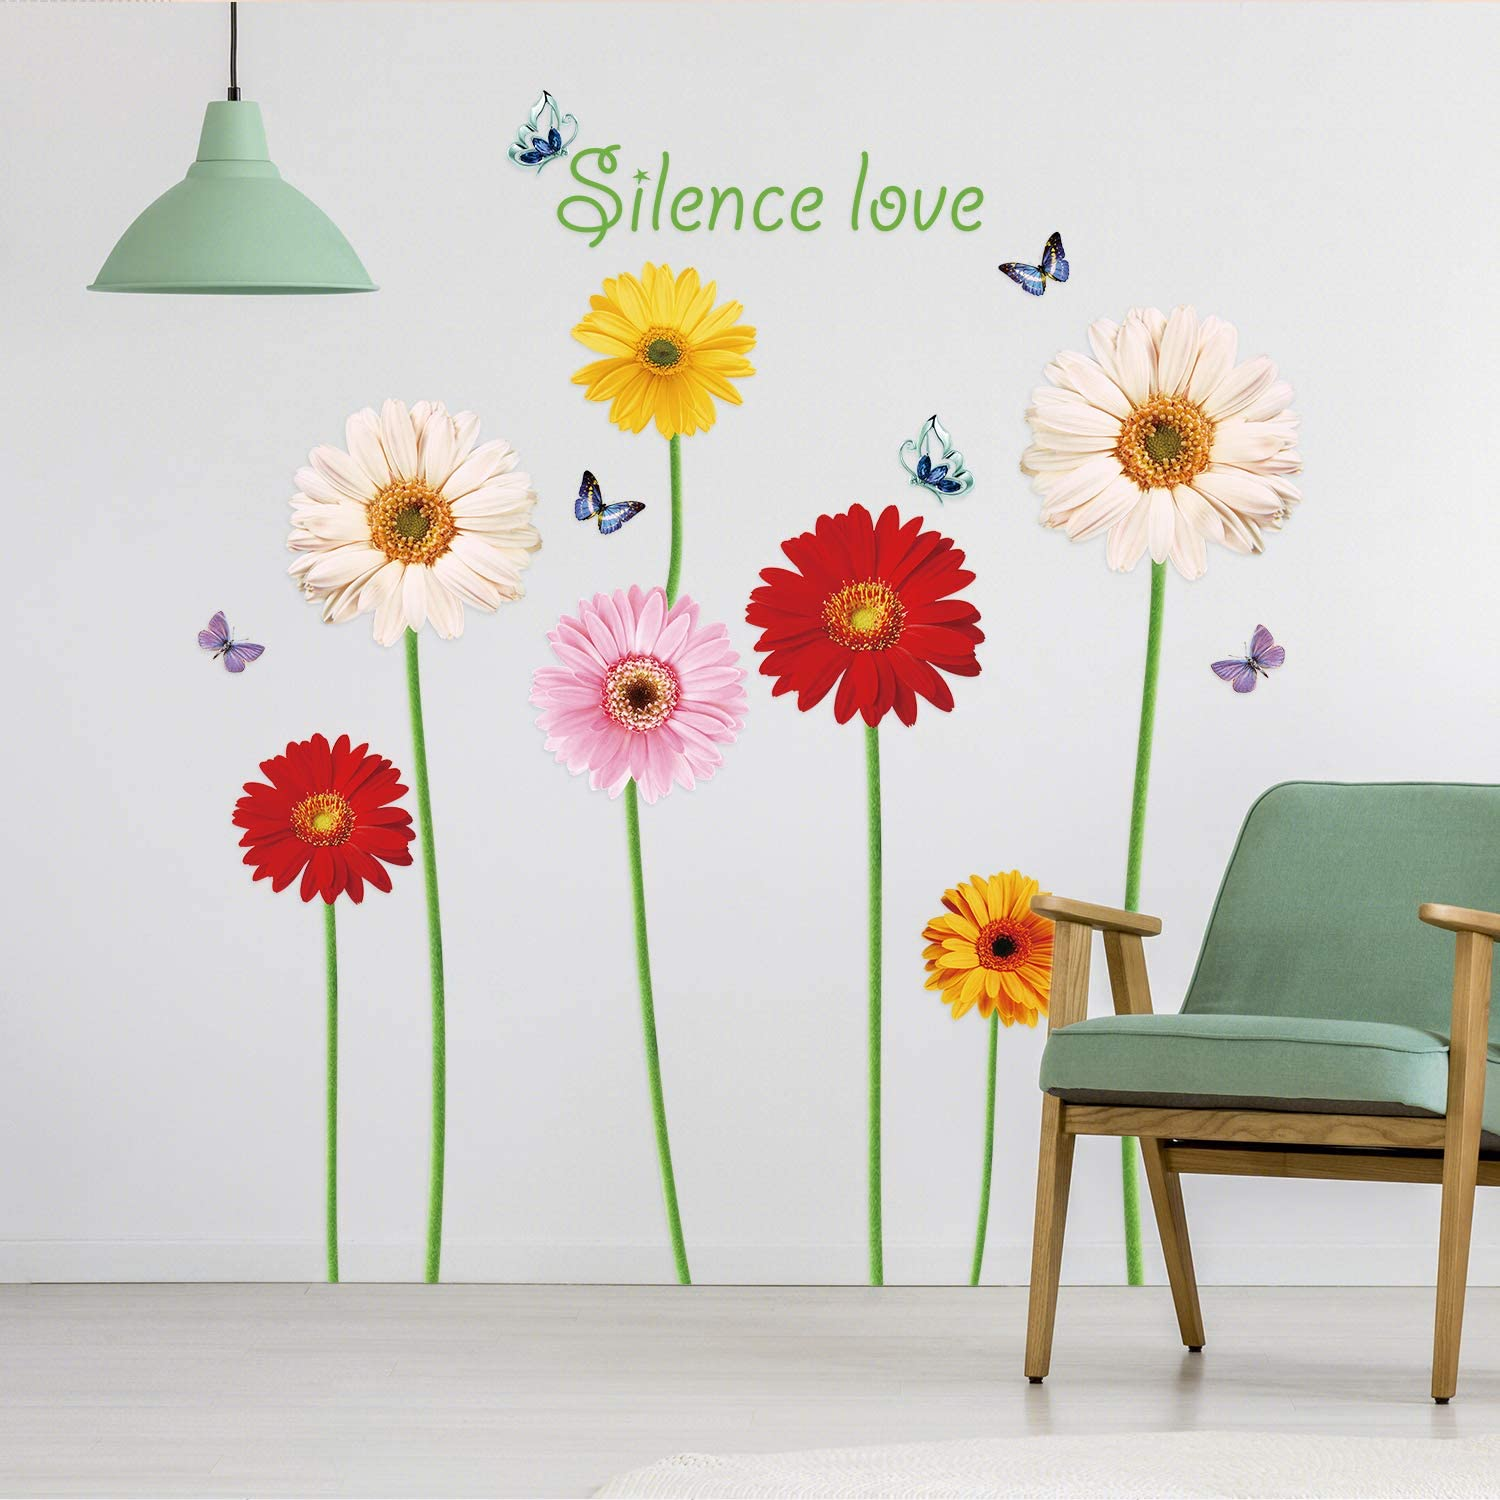 Taciwaz Sunflower Wall Decals with Butterflies Removable Colorful Flower Wall Stickers for Living Room Kids Room Bedroom Decoration